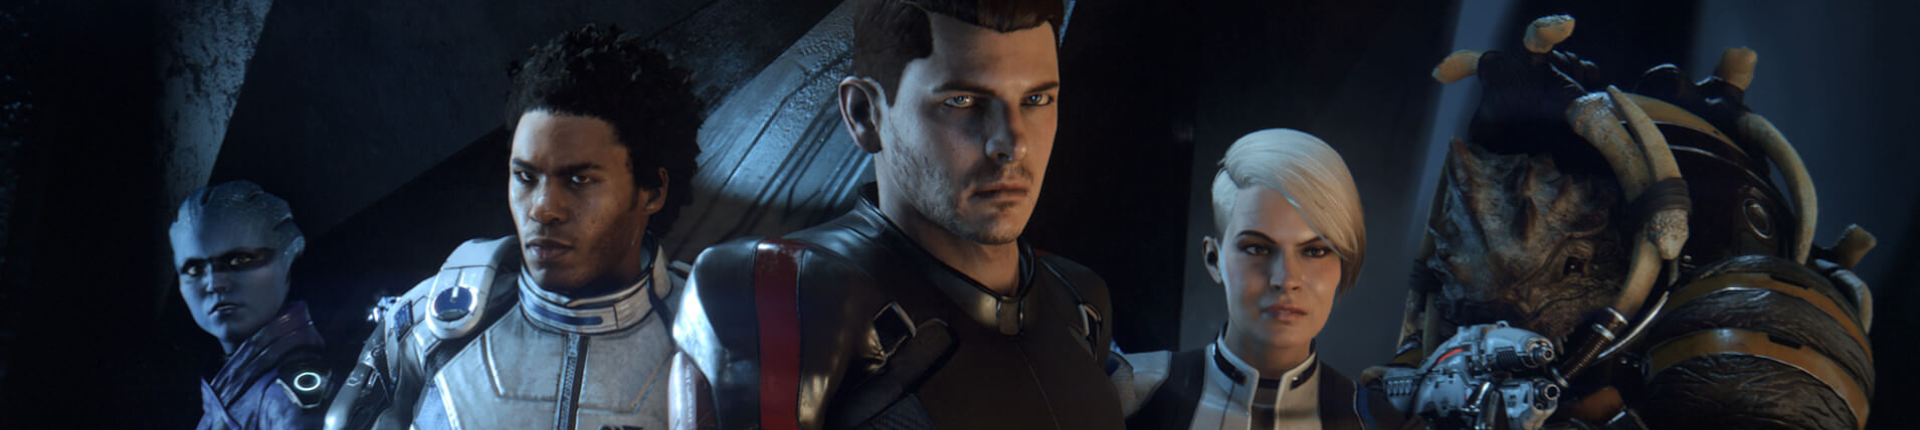 Mass Effect: Andromeda Patch Notes 1.08 (6/6/17)